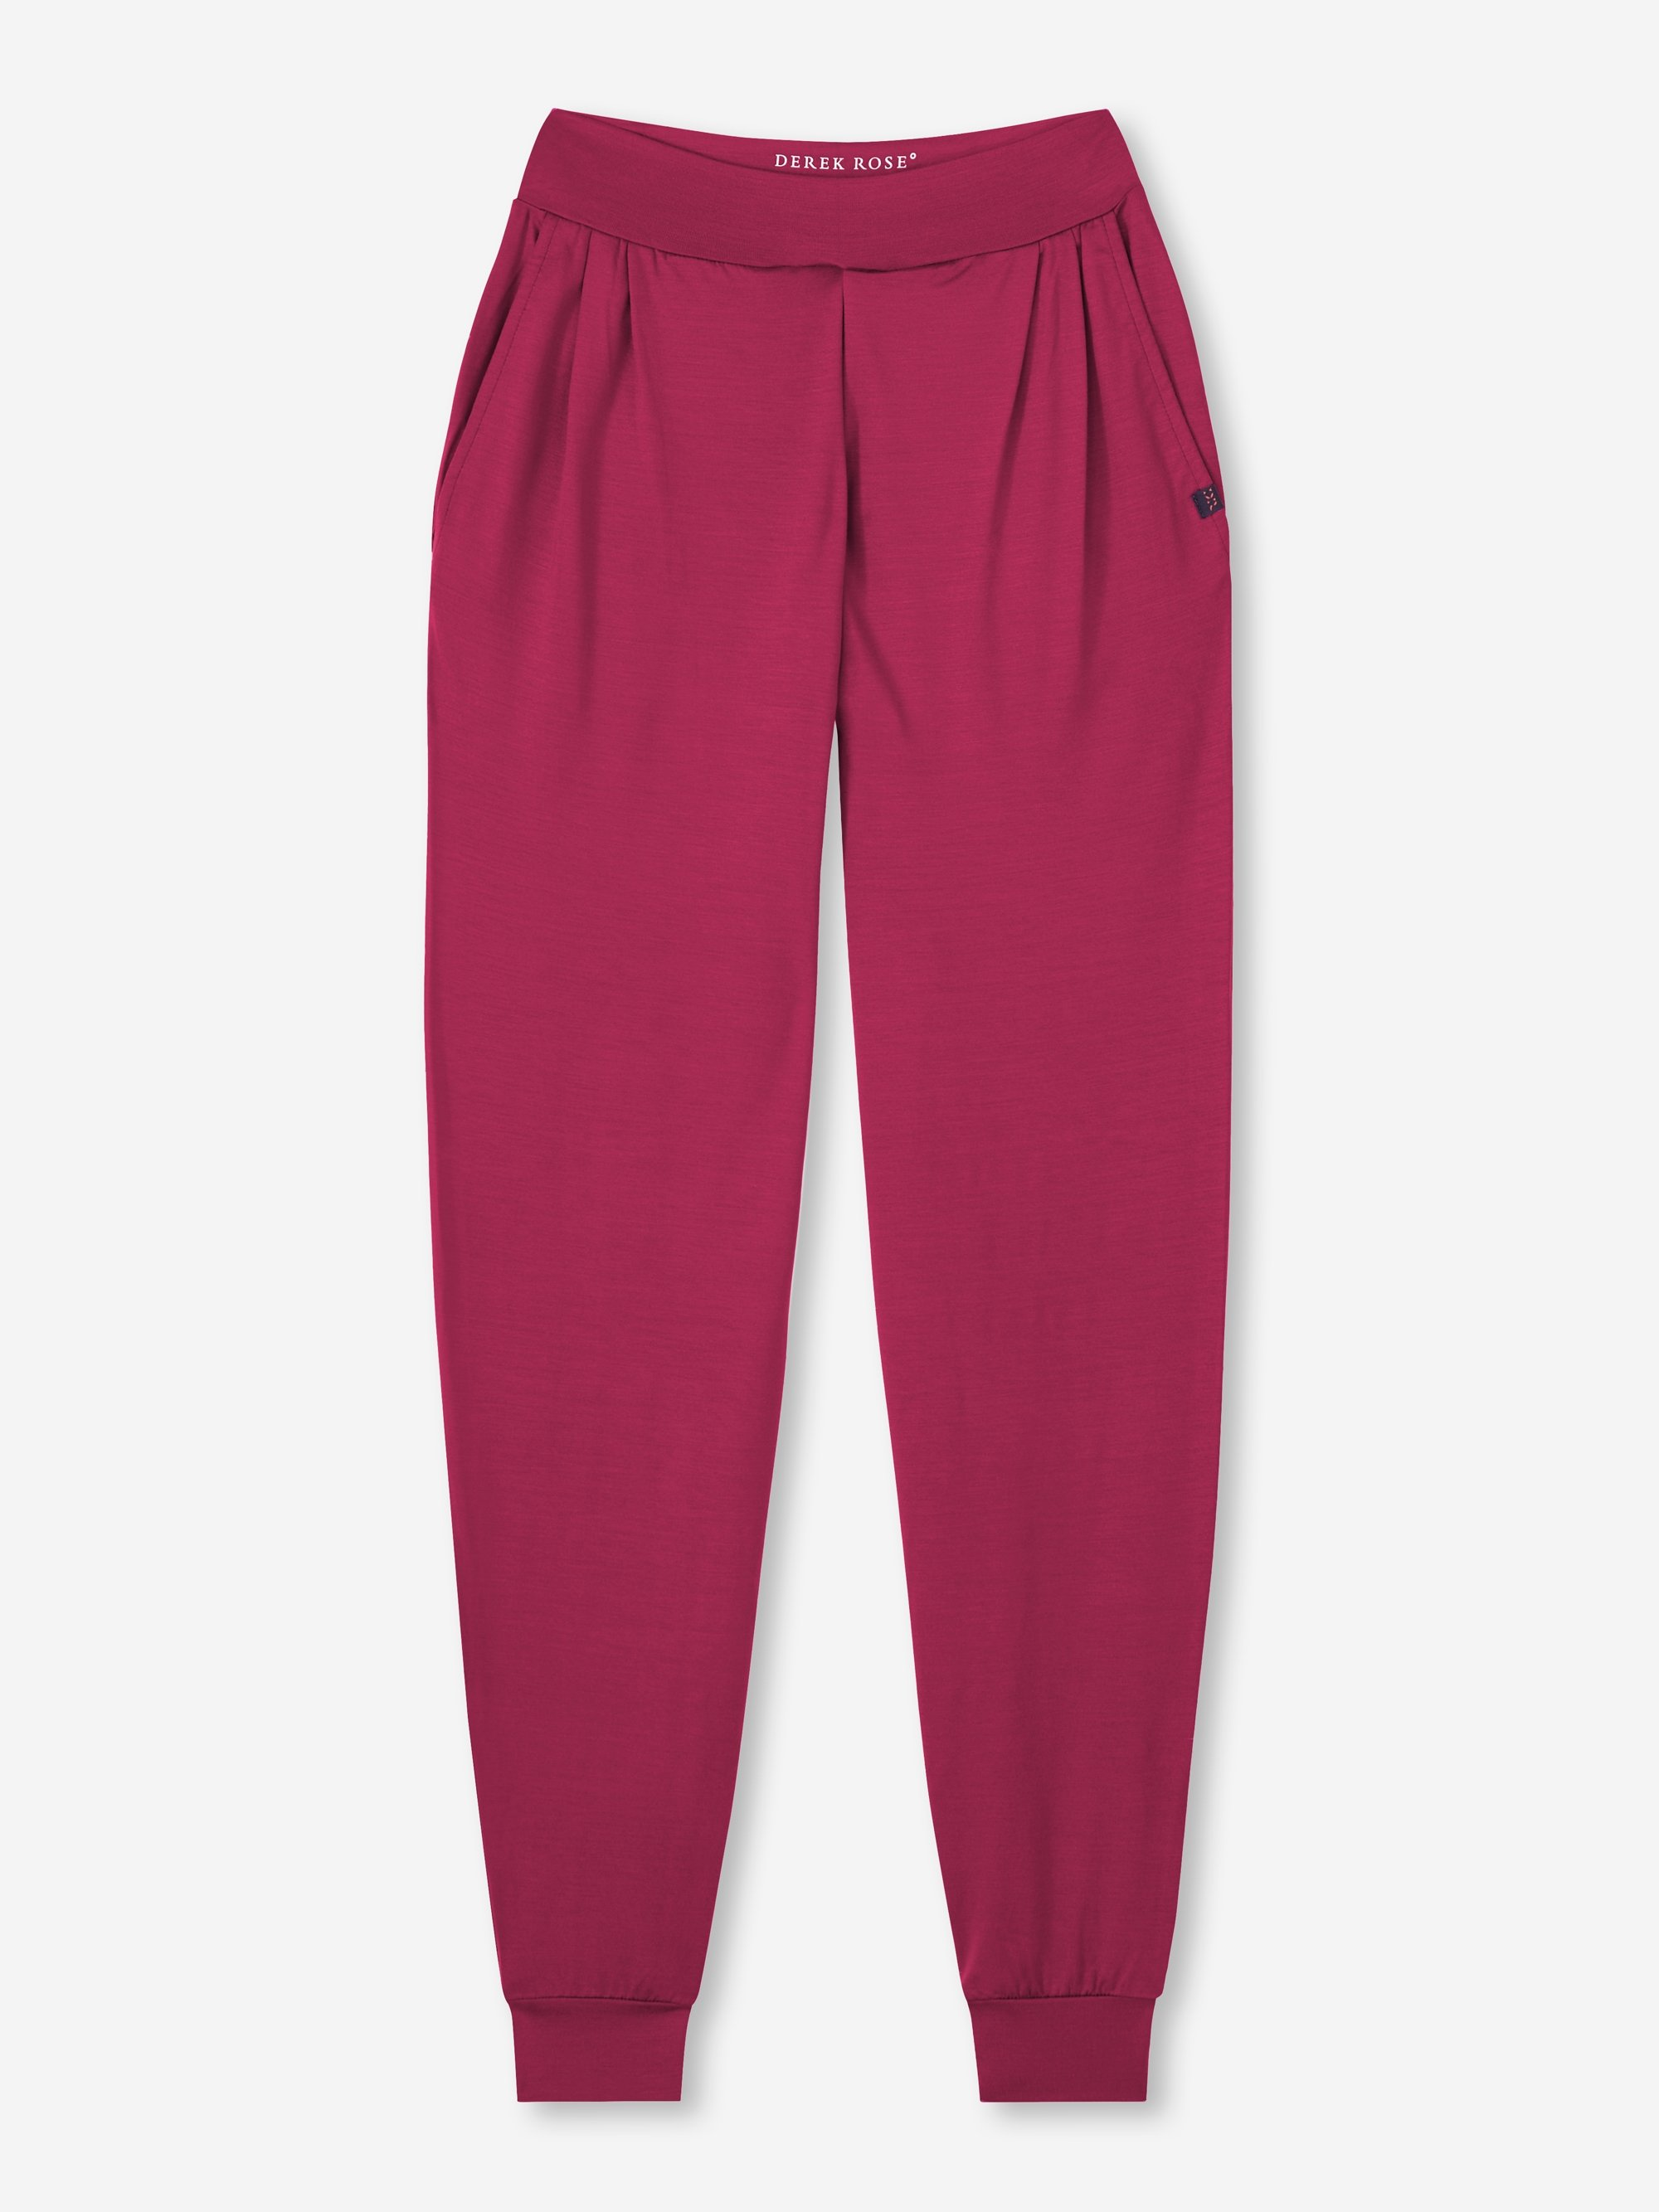 Women's Jersey Leisure Pants Basel 10 Micro Modal Stretch Berry